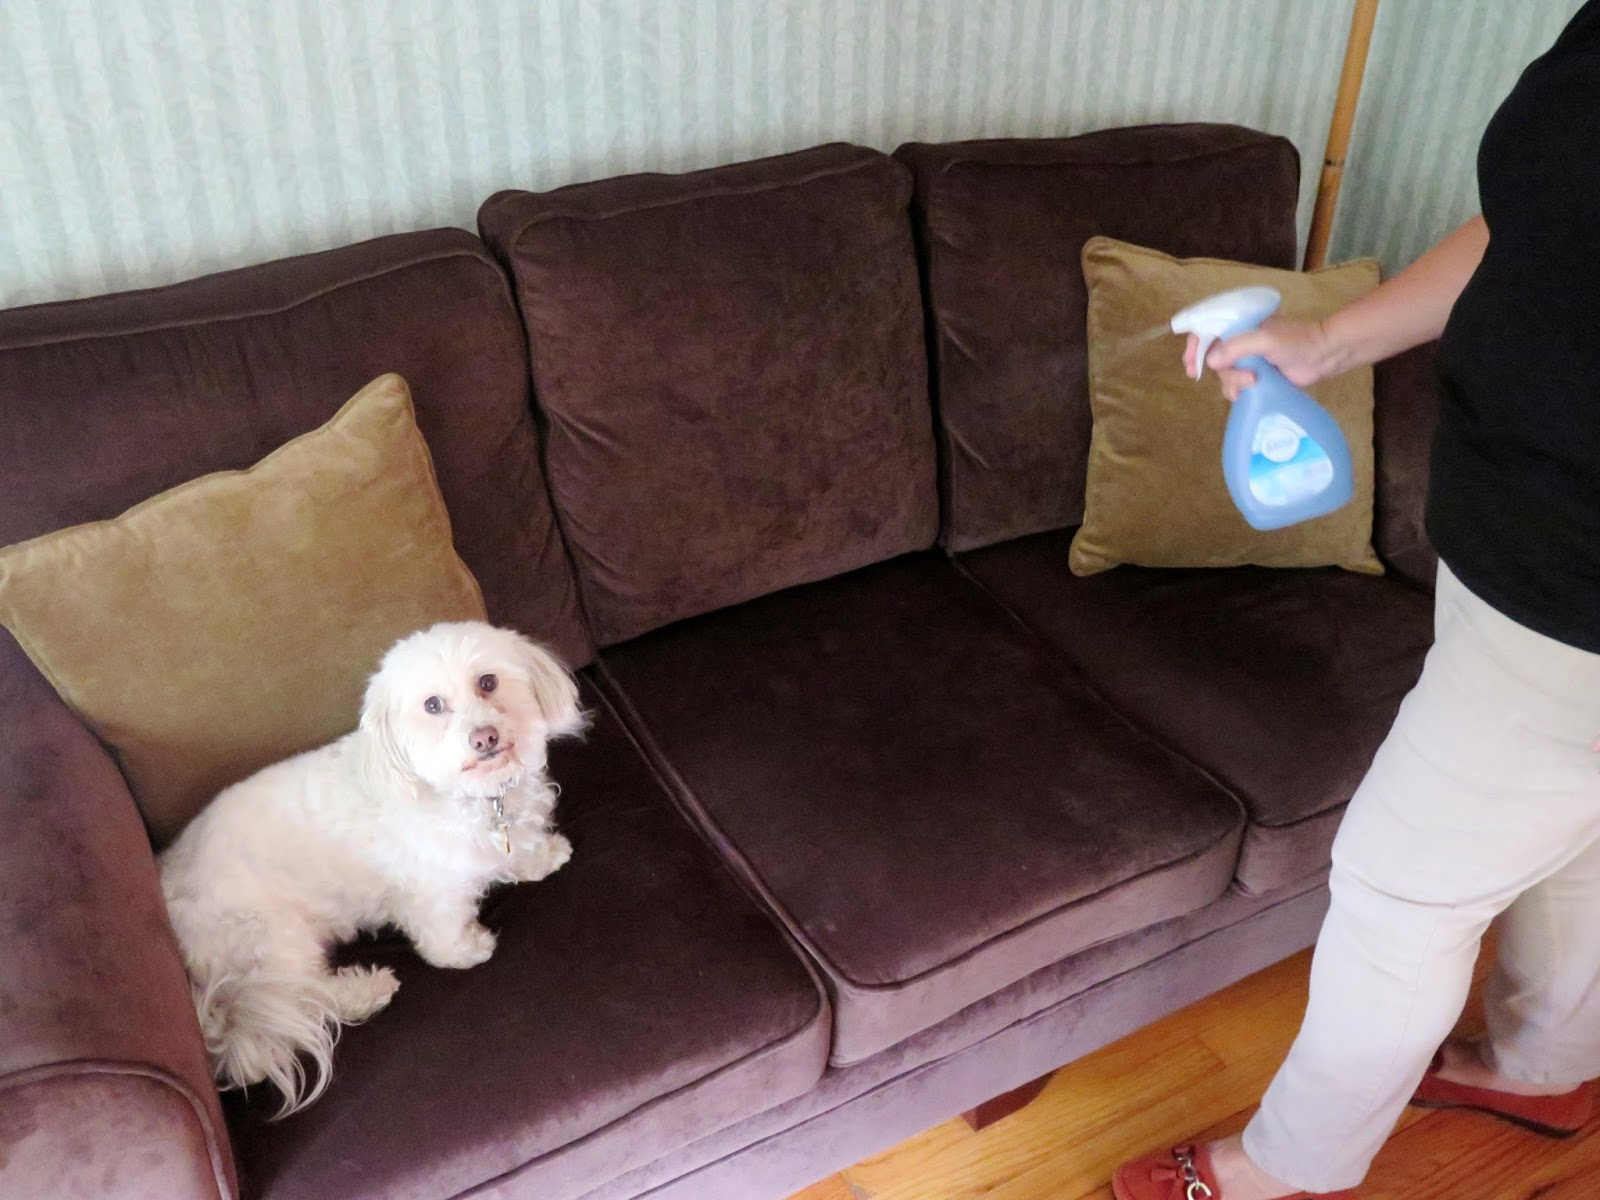 Can You Spray Febreeze On A Dog